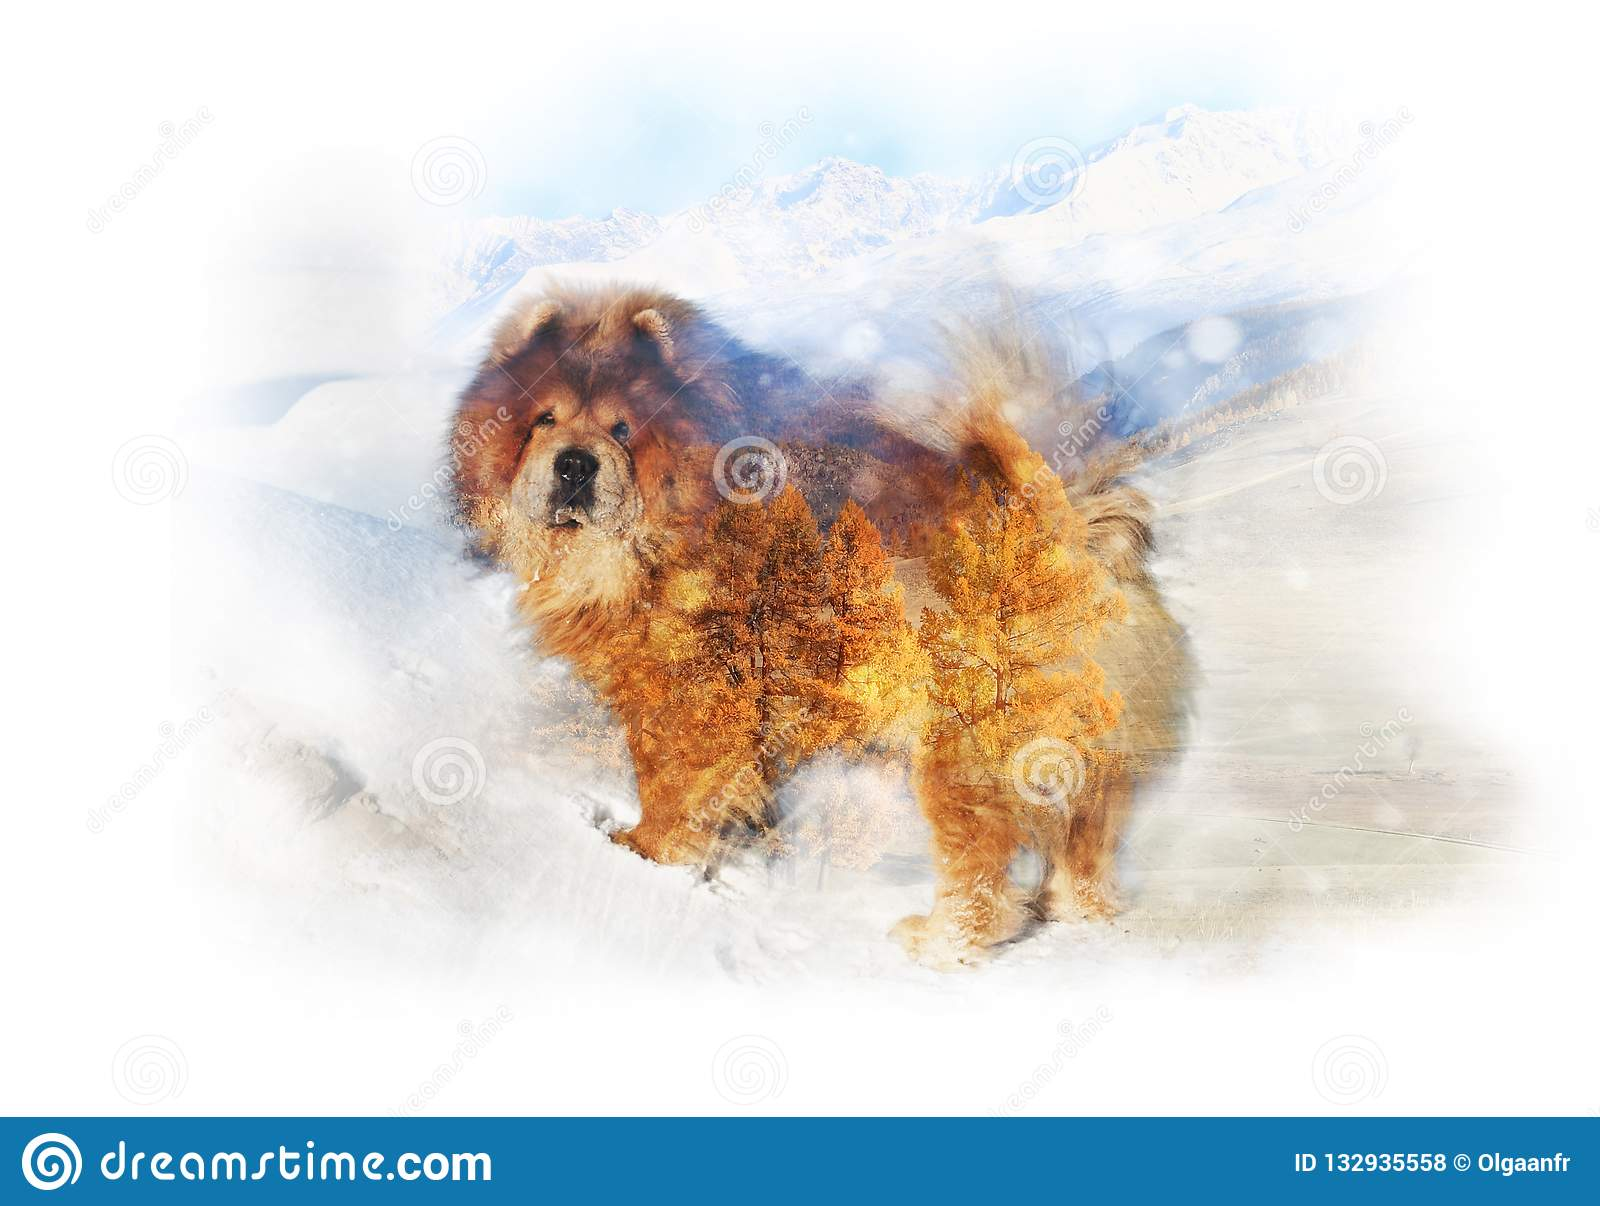 Double exposure from a red-haired dog and landscape of mountain